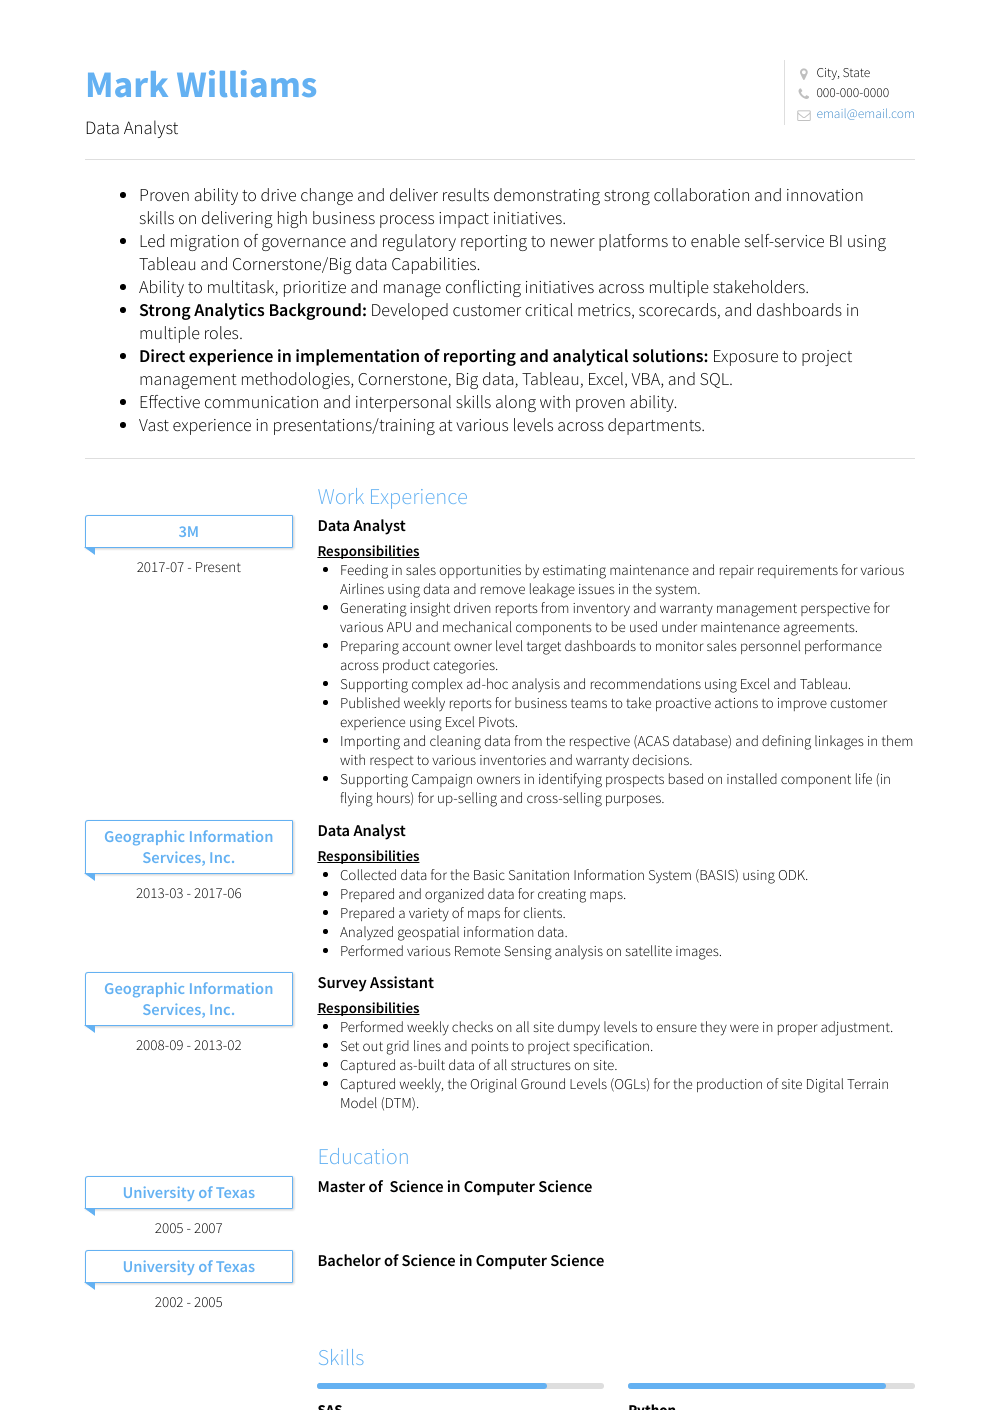 Data Analyst Resume Sample and Template